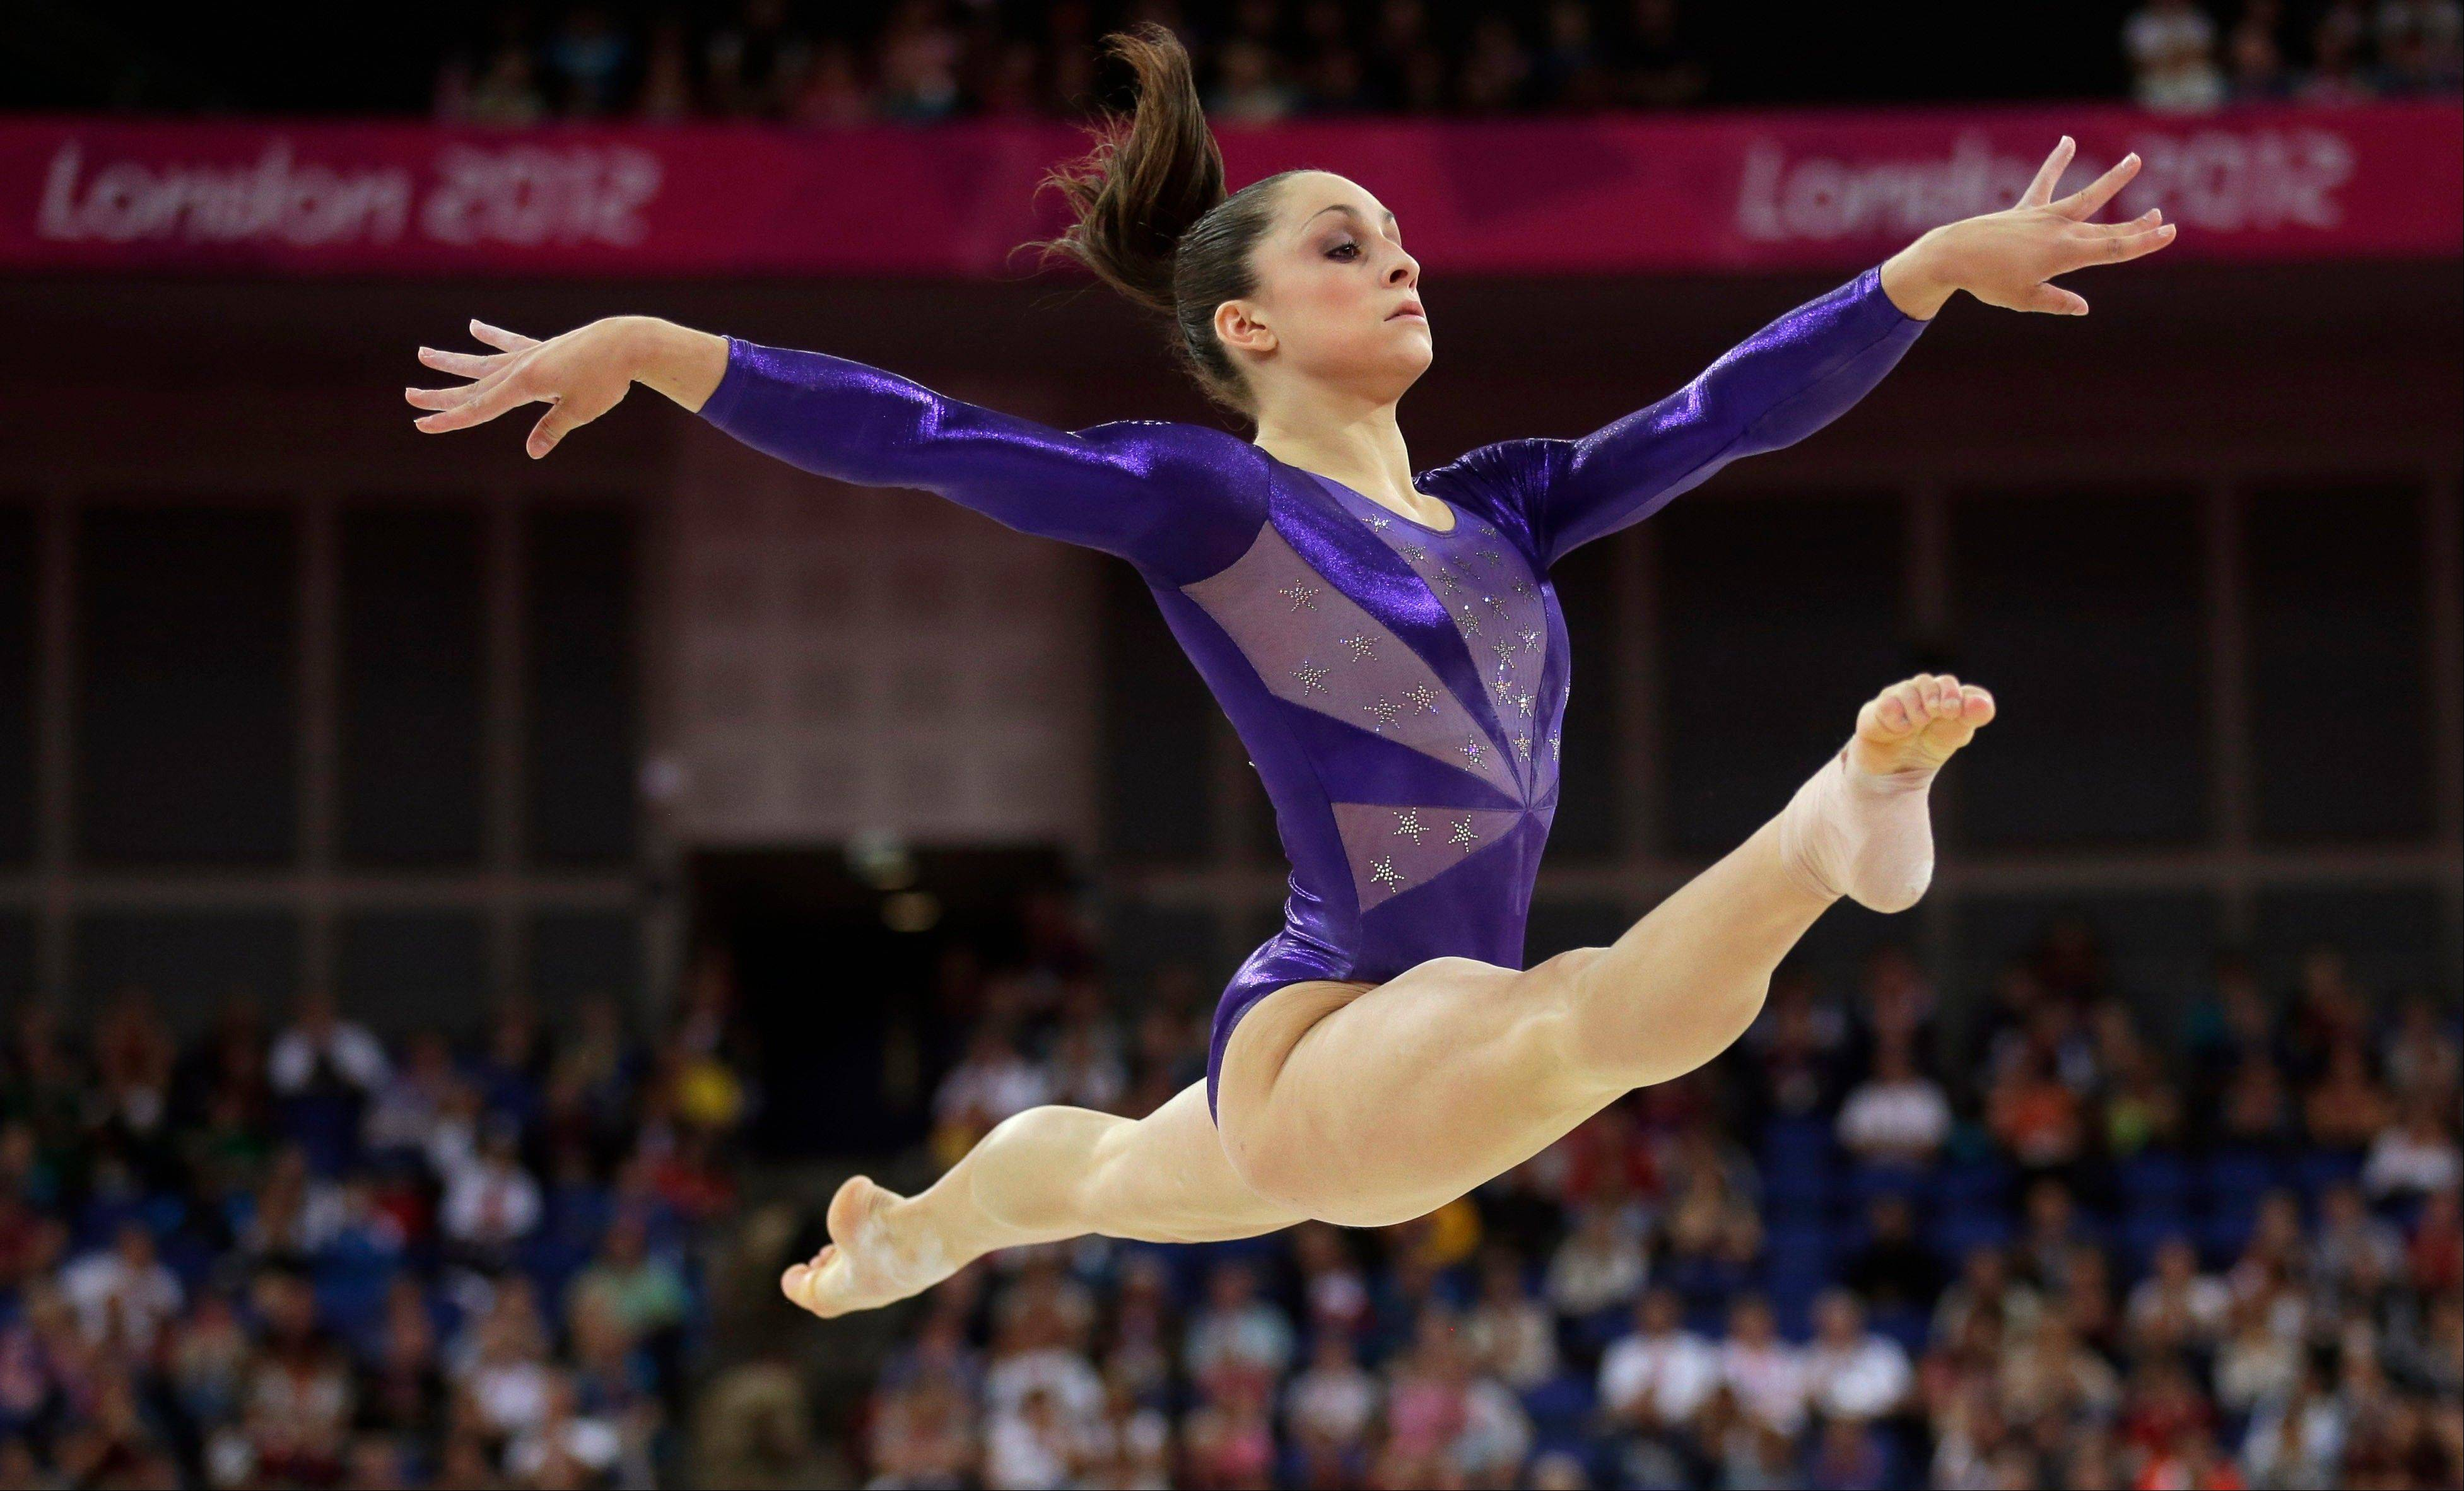 U.S. gymnast Jordyn Wieber performs on the floor Sunday during the Artistic Gymnastics women's qualification at the 2012 Summer Olympics in London.